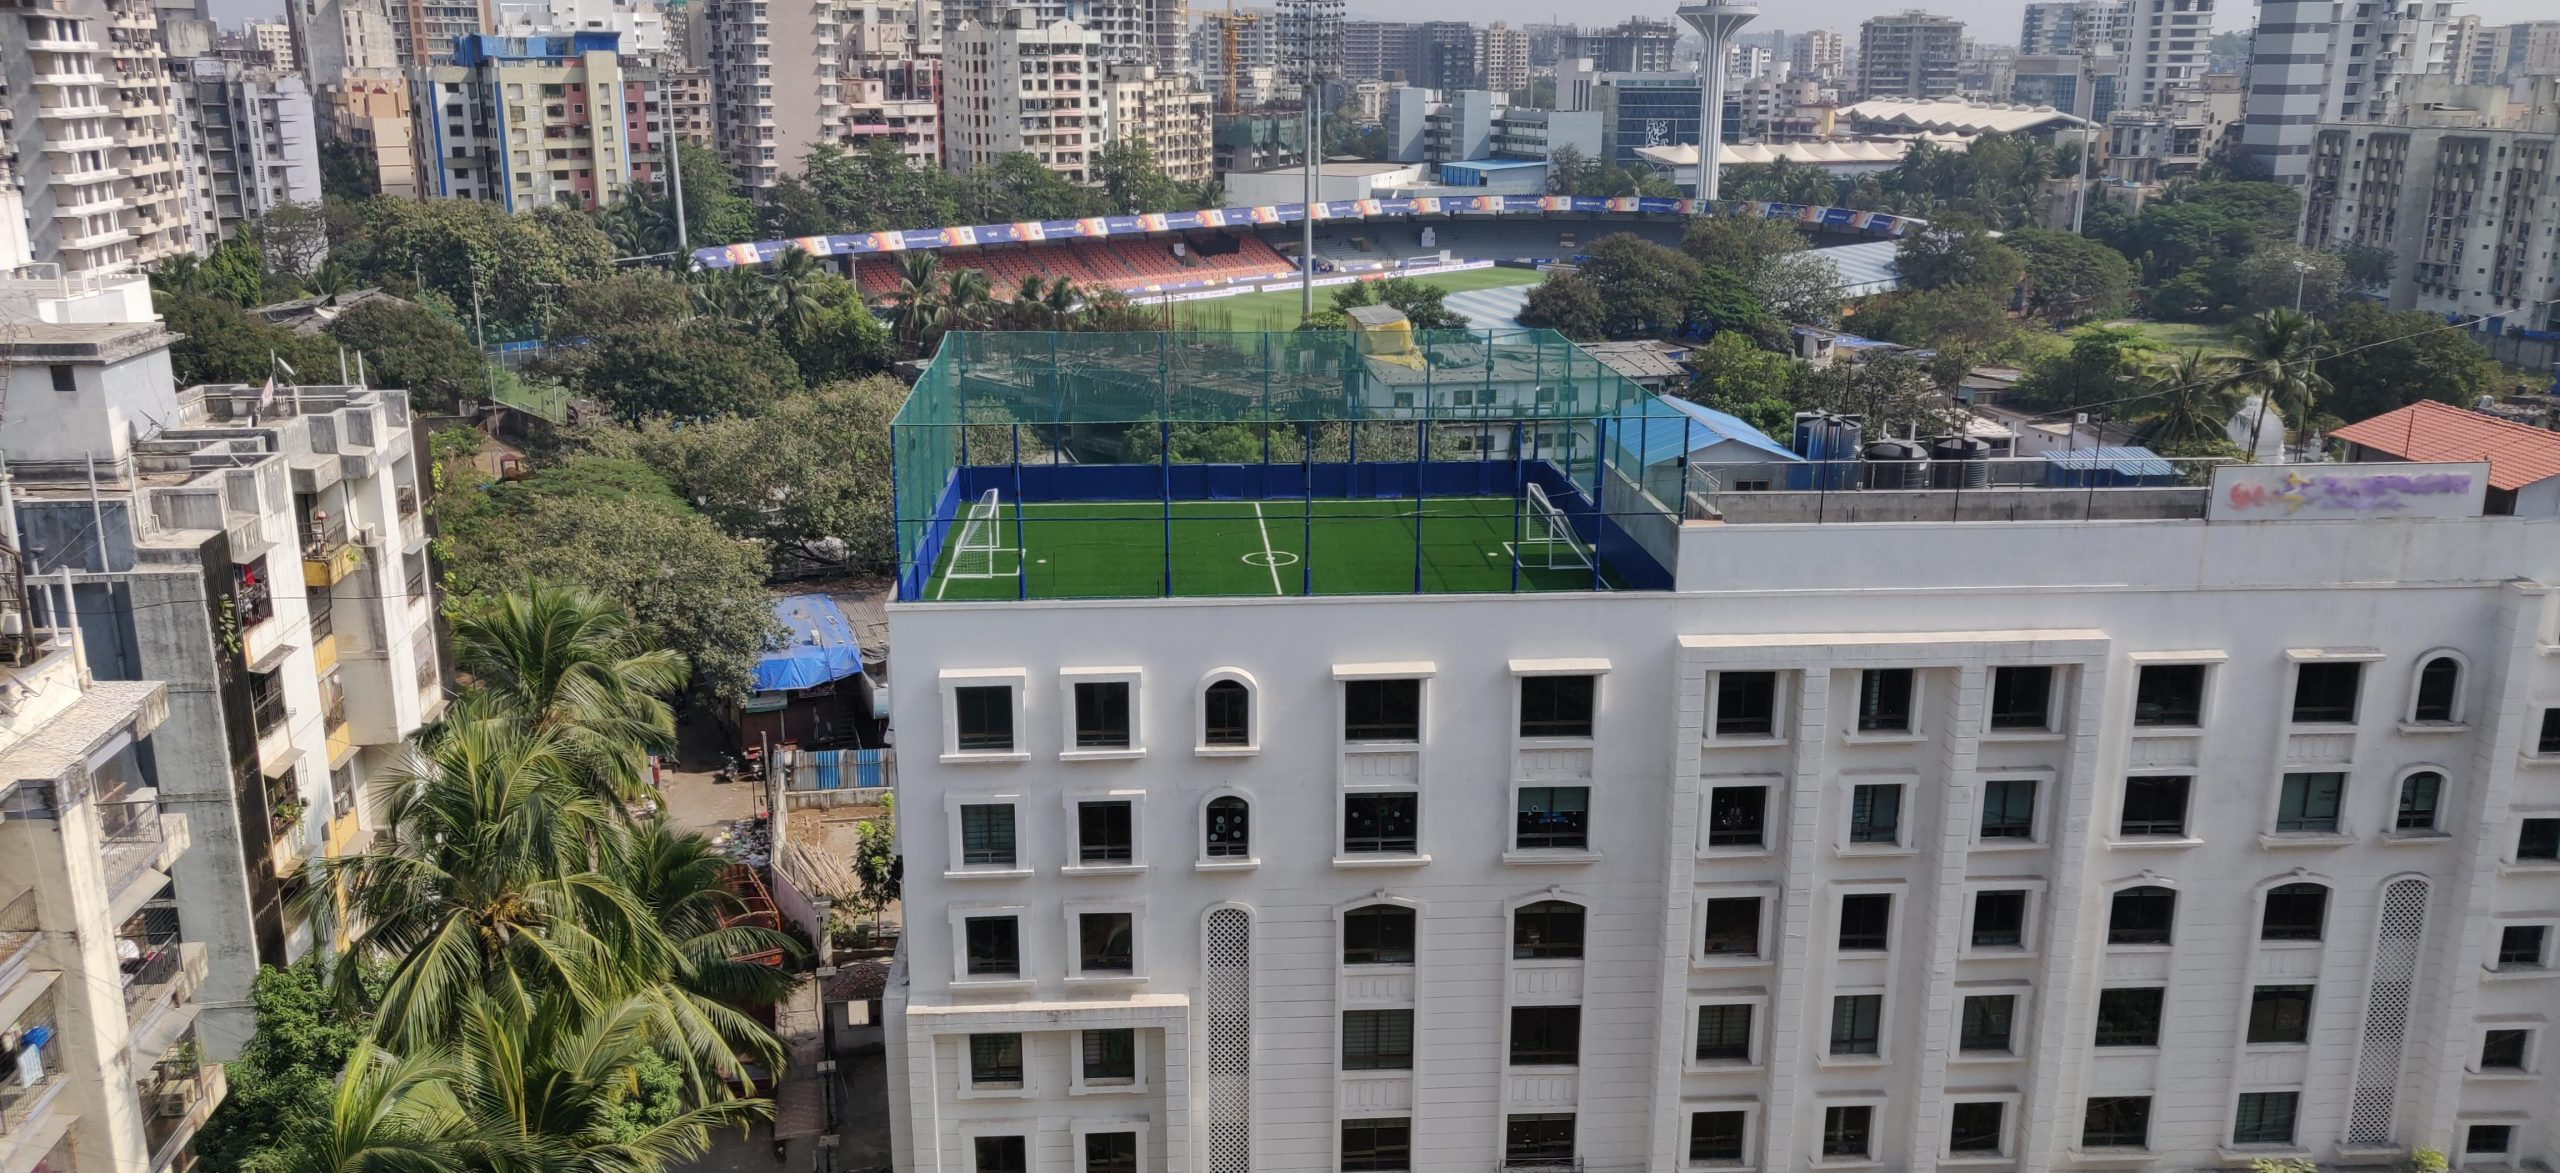 2BHK in Andheri (West) with a view